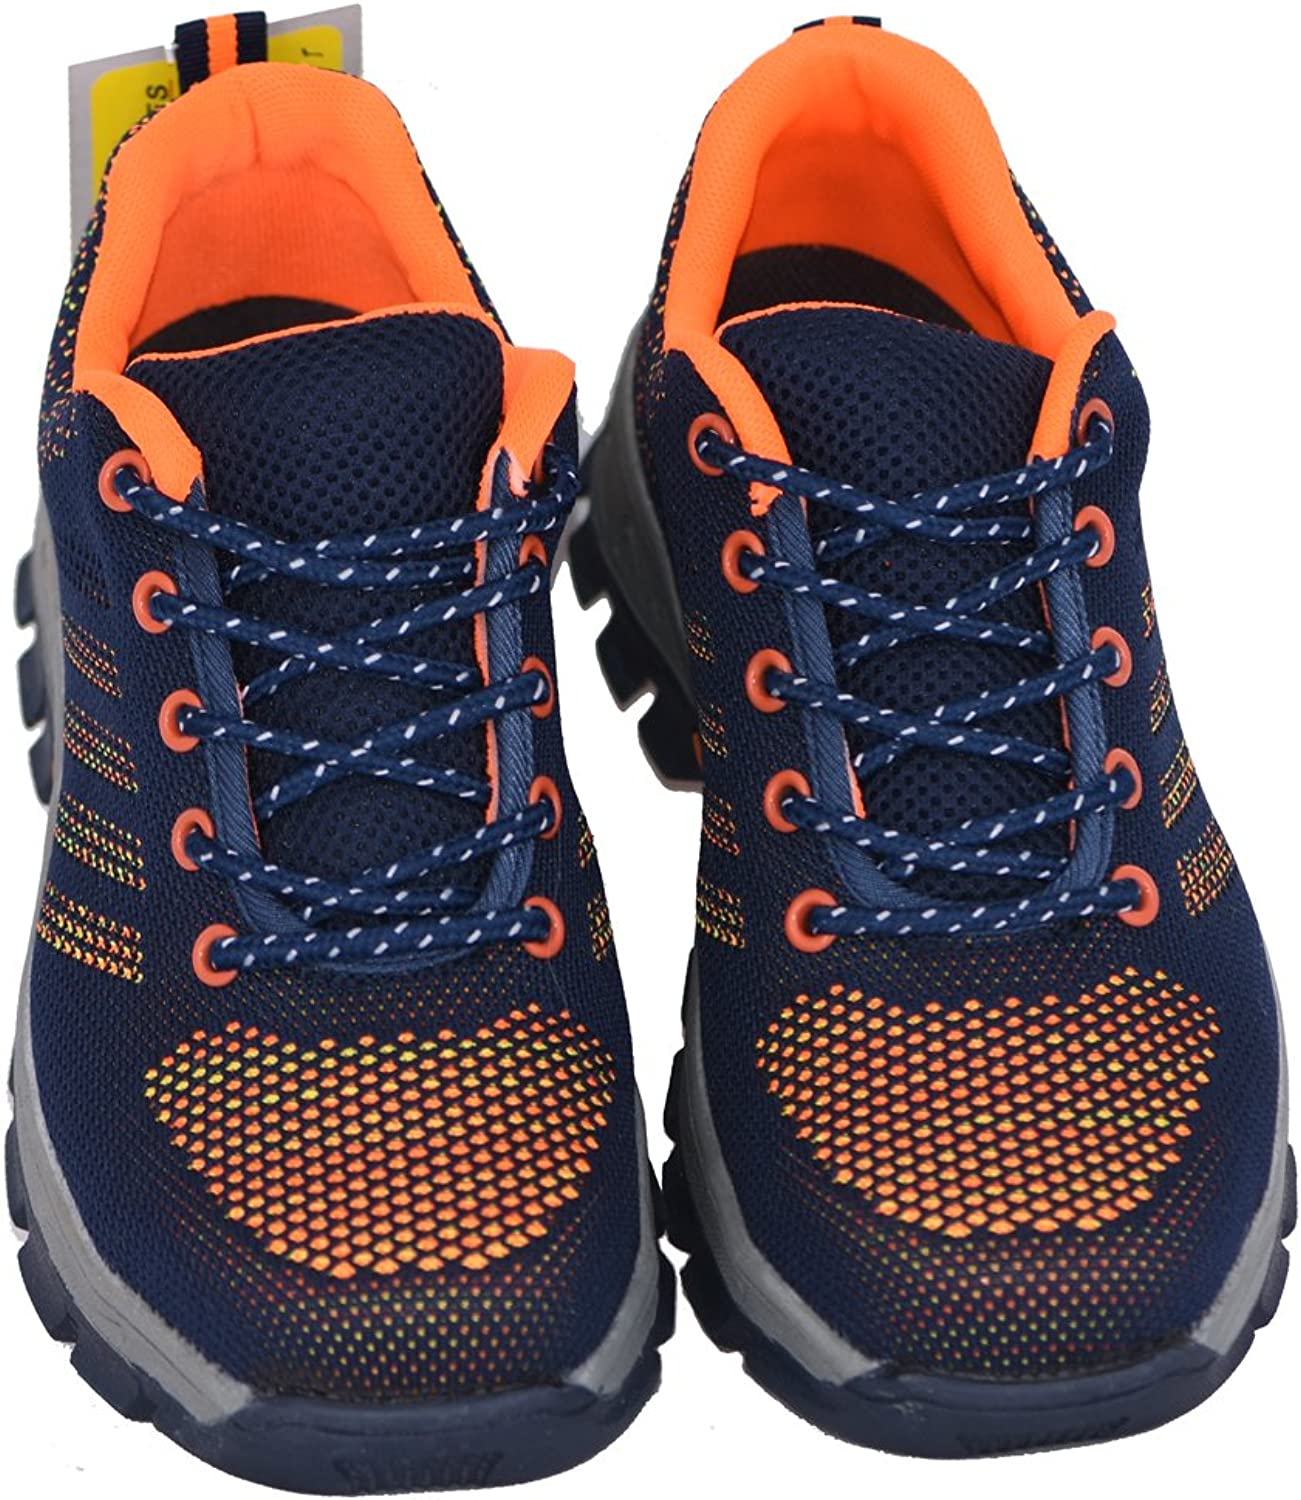 GeBaoZhen Unisex Work Safety shoes, Steel Toe Work shoes Industrial & Construction shoes Puncture Proof Safety shoes orange